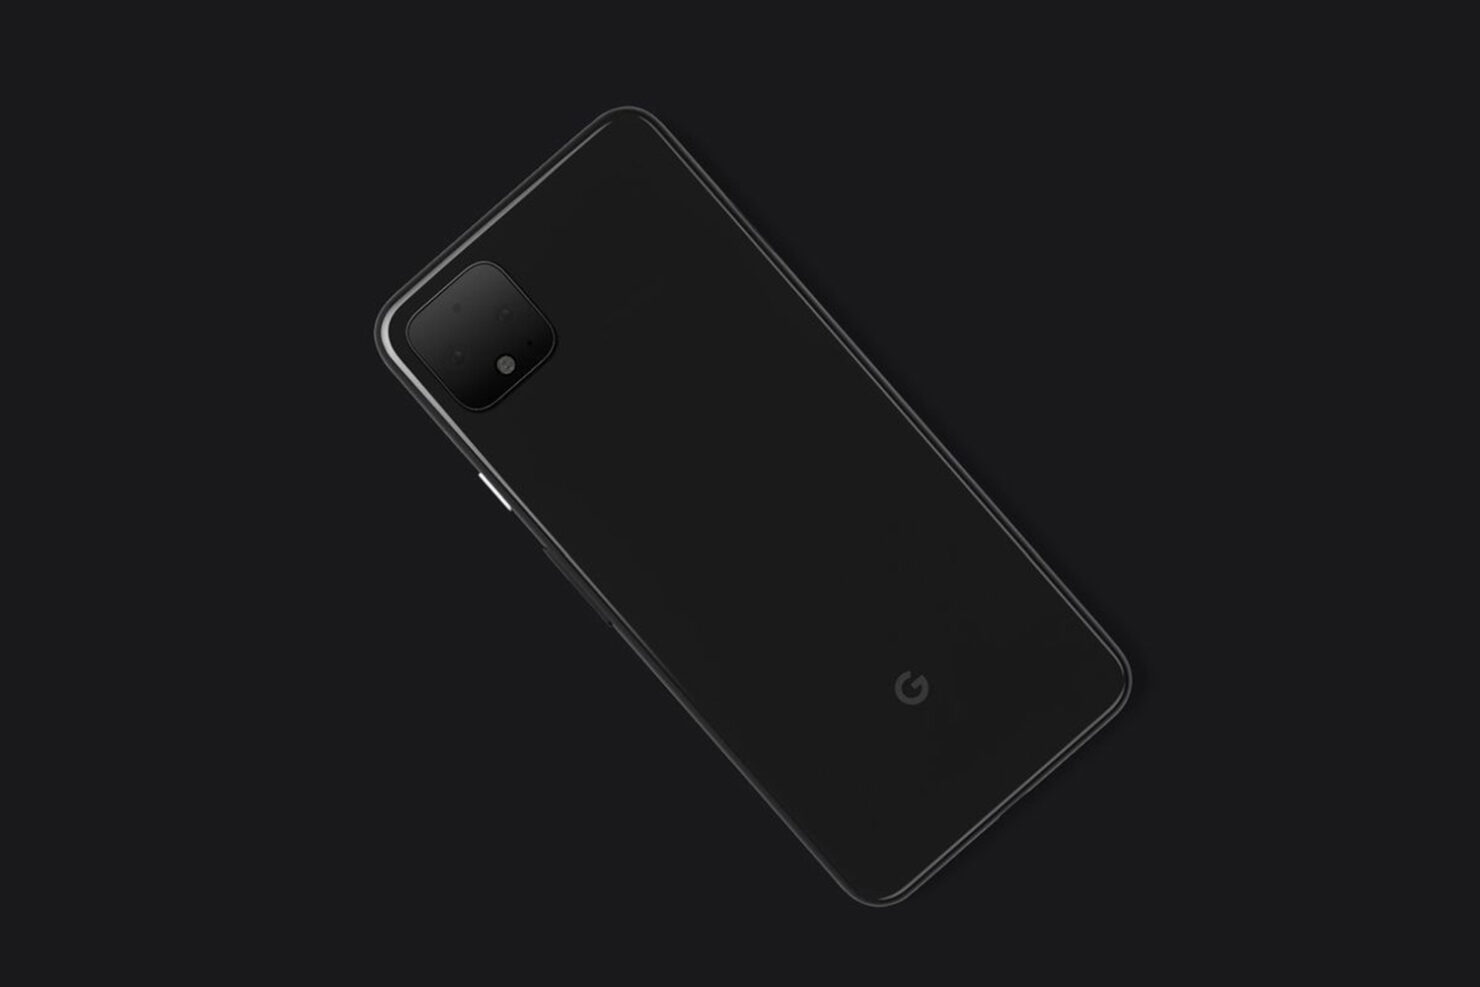 Pixel 4 launch expected on October 15